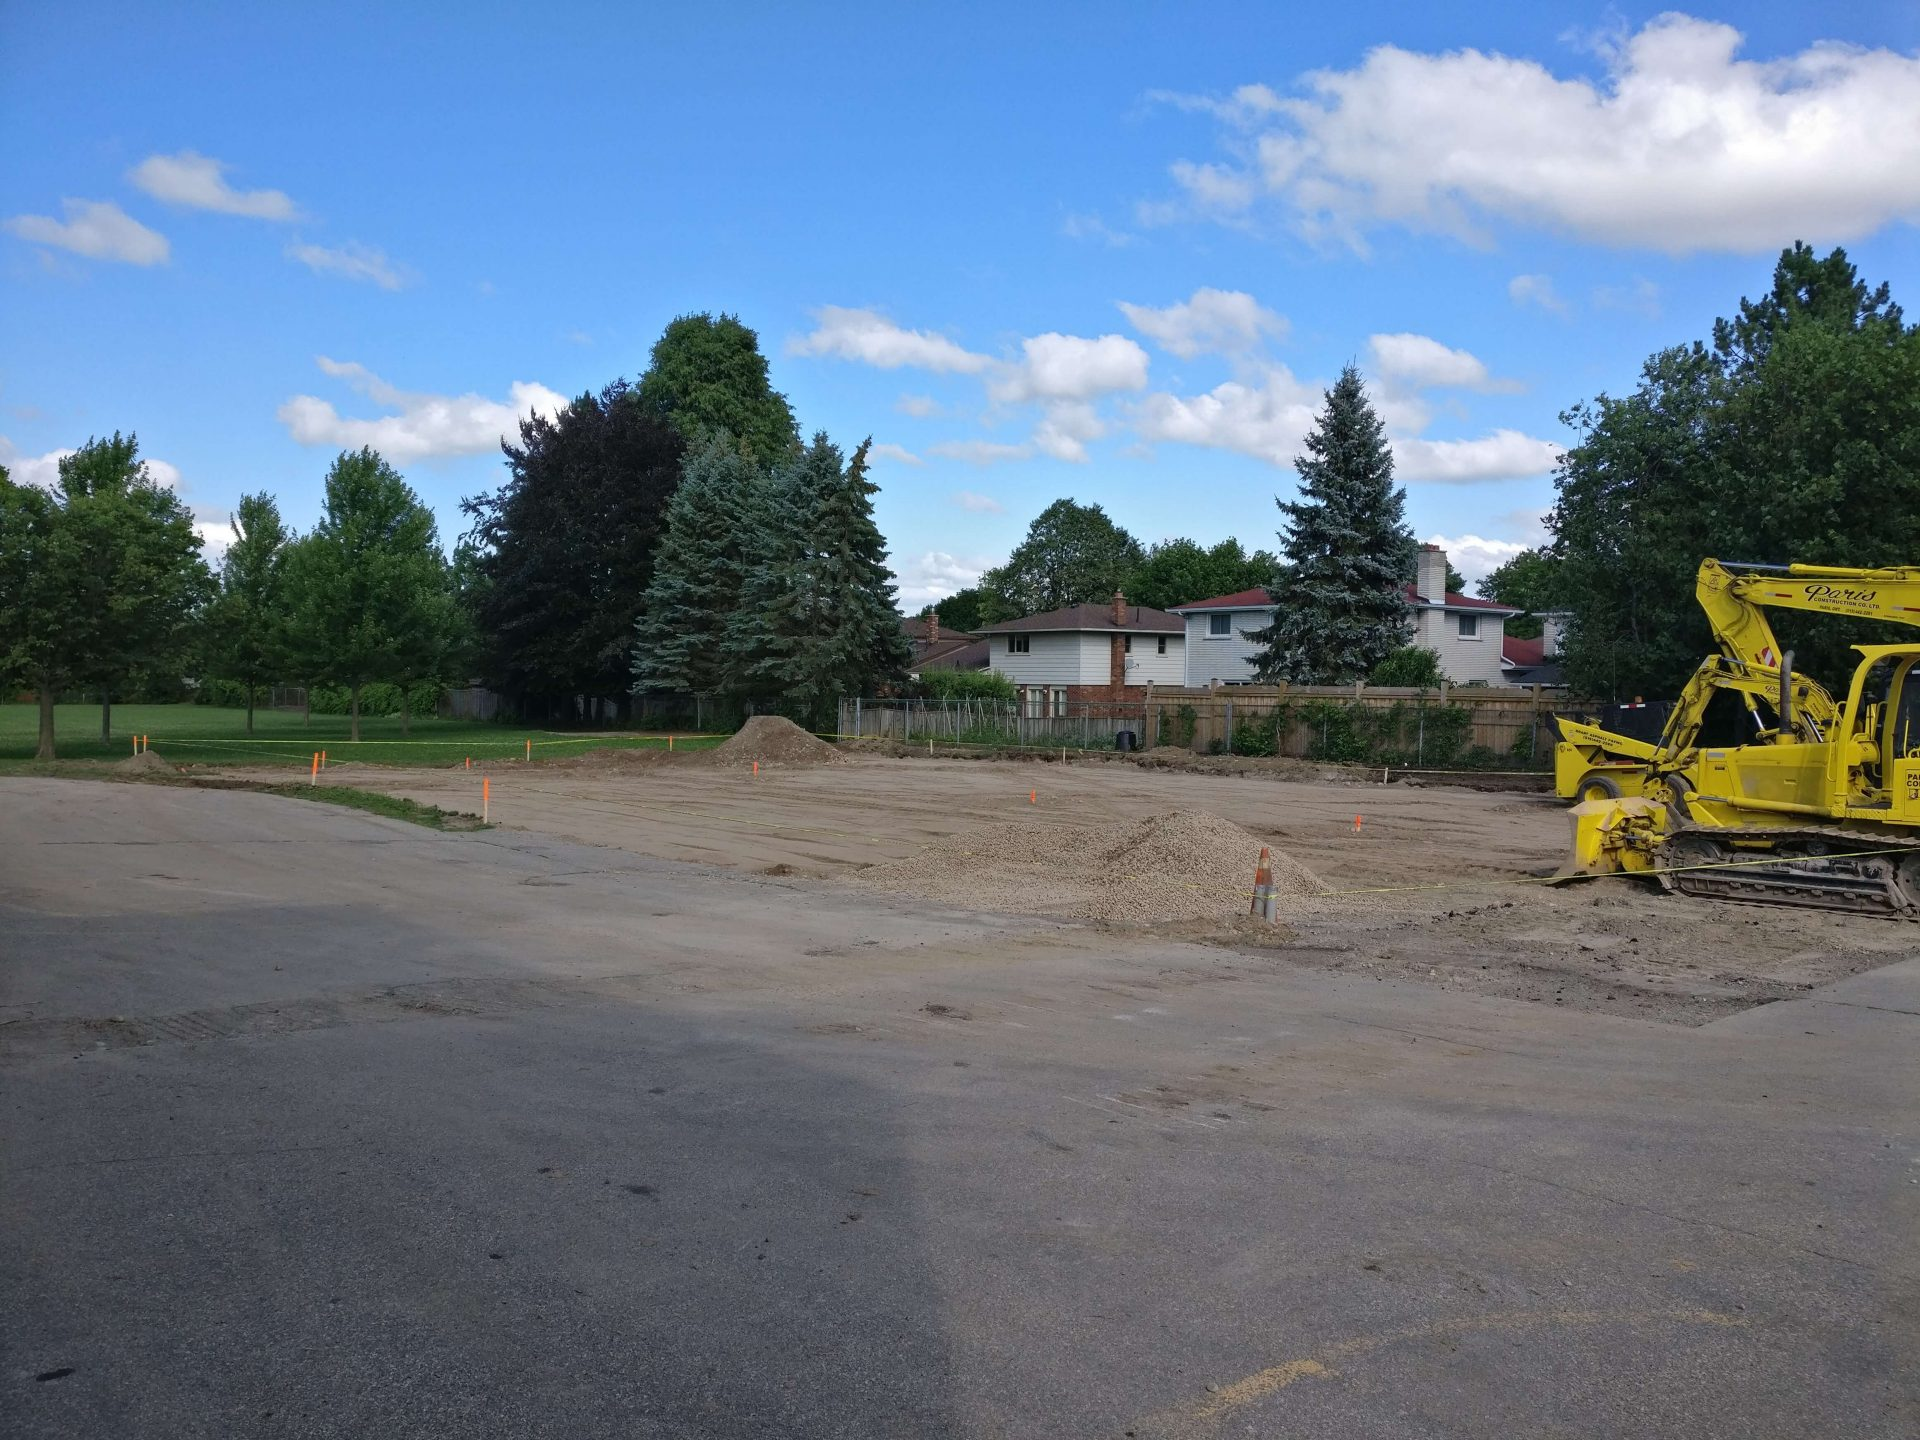 Unpaved lot with excavator